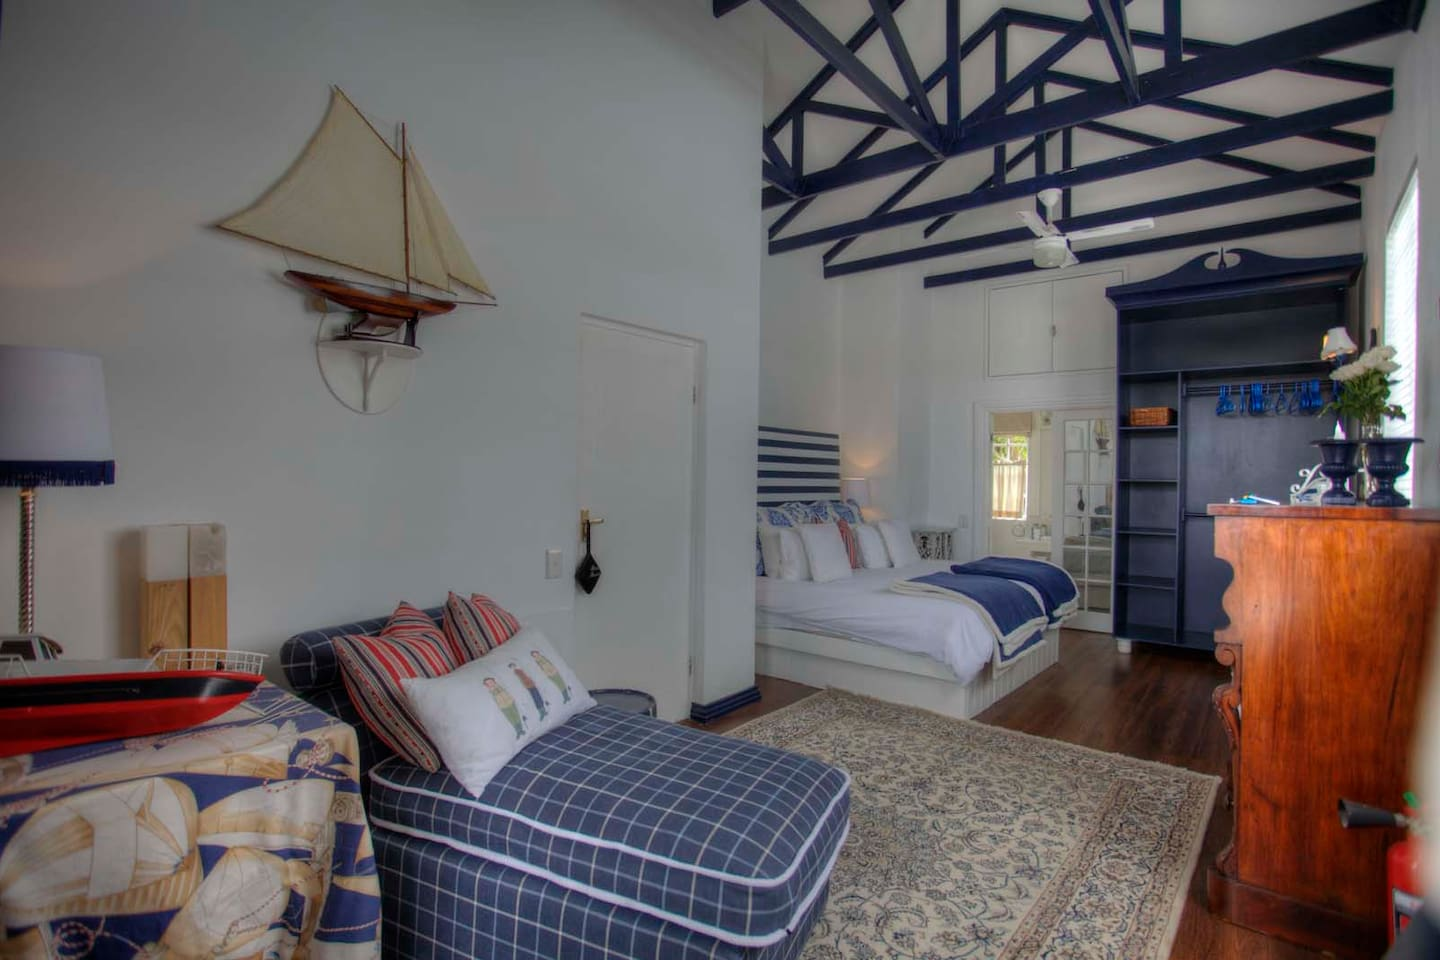 King Size Upstairs room with en suite shower and tiny balcony over looking pool and lapa area